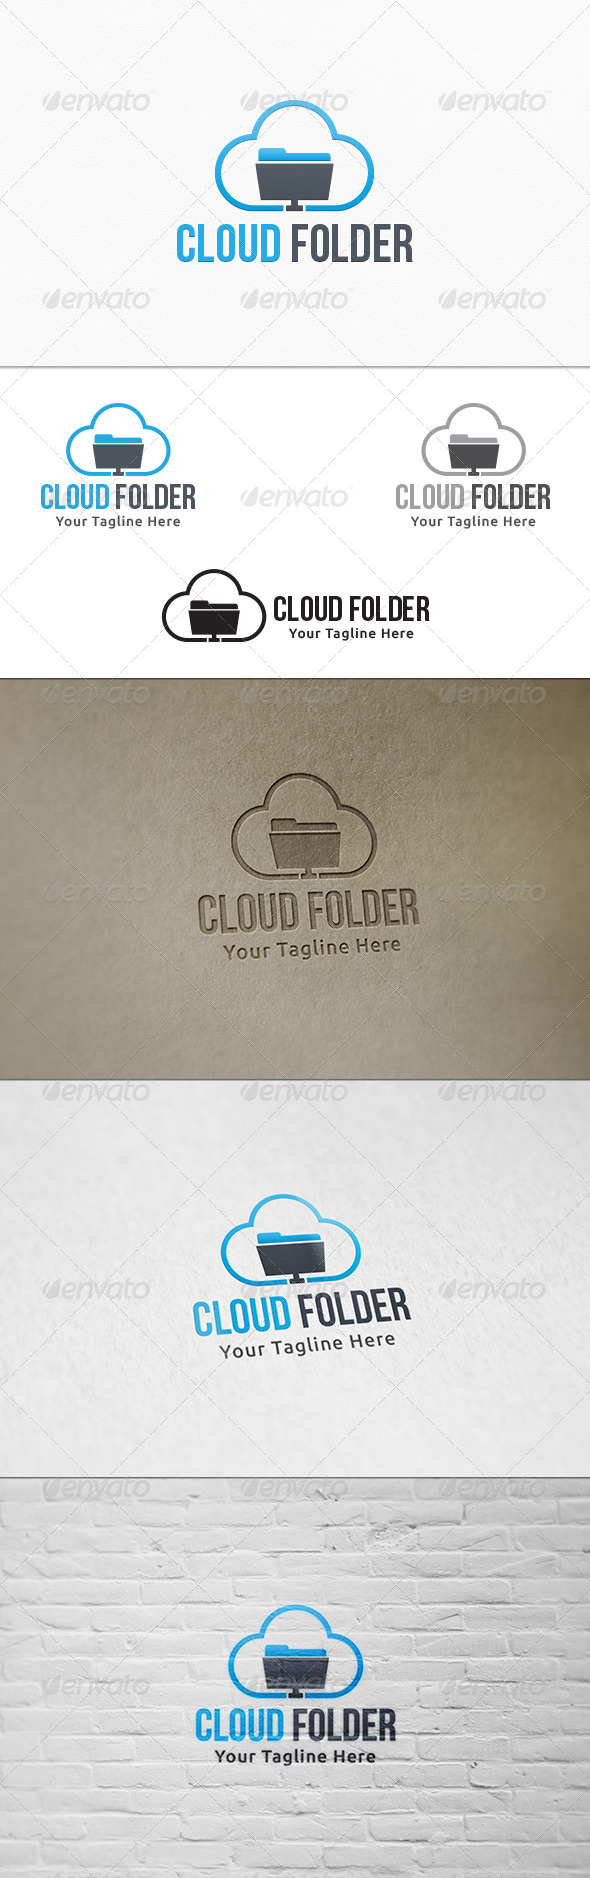 GraphicRiver Cloud Folder Logo Template 7998462